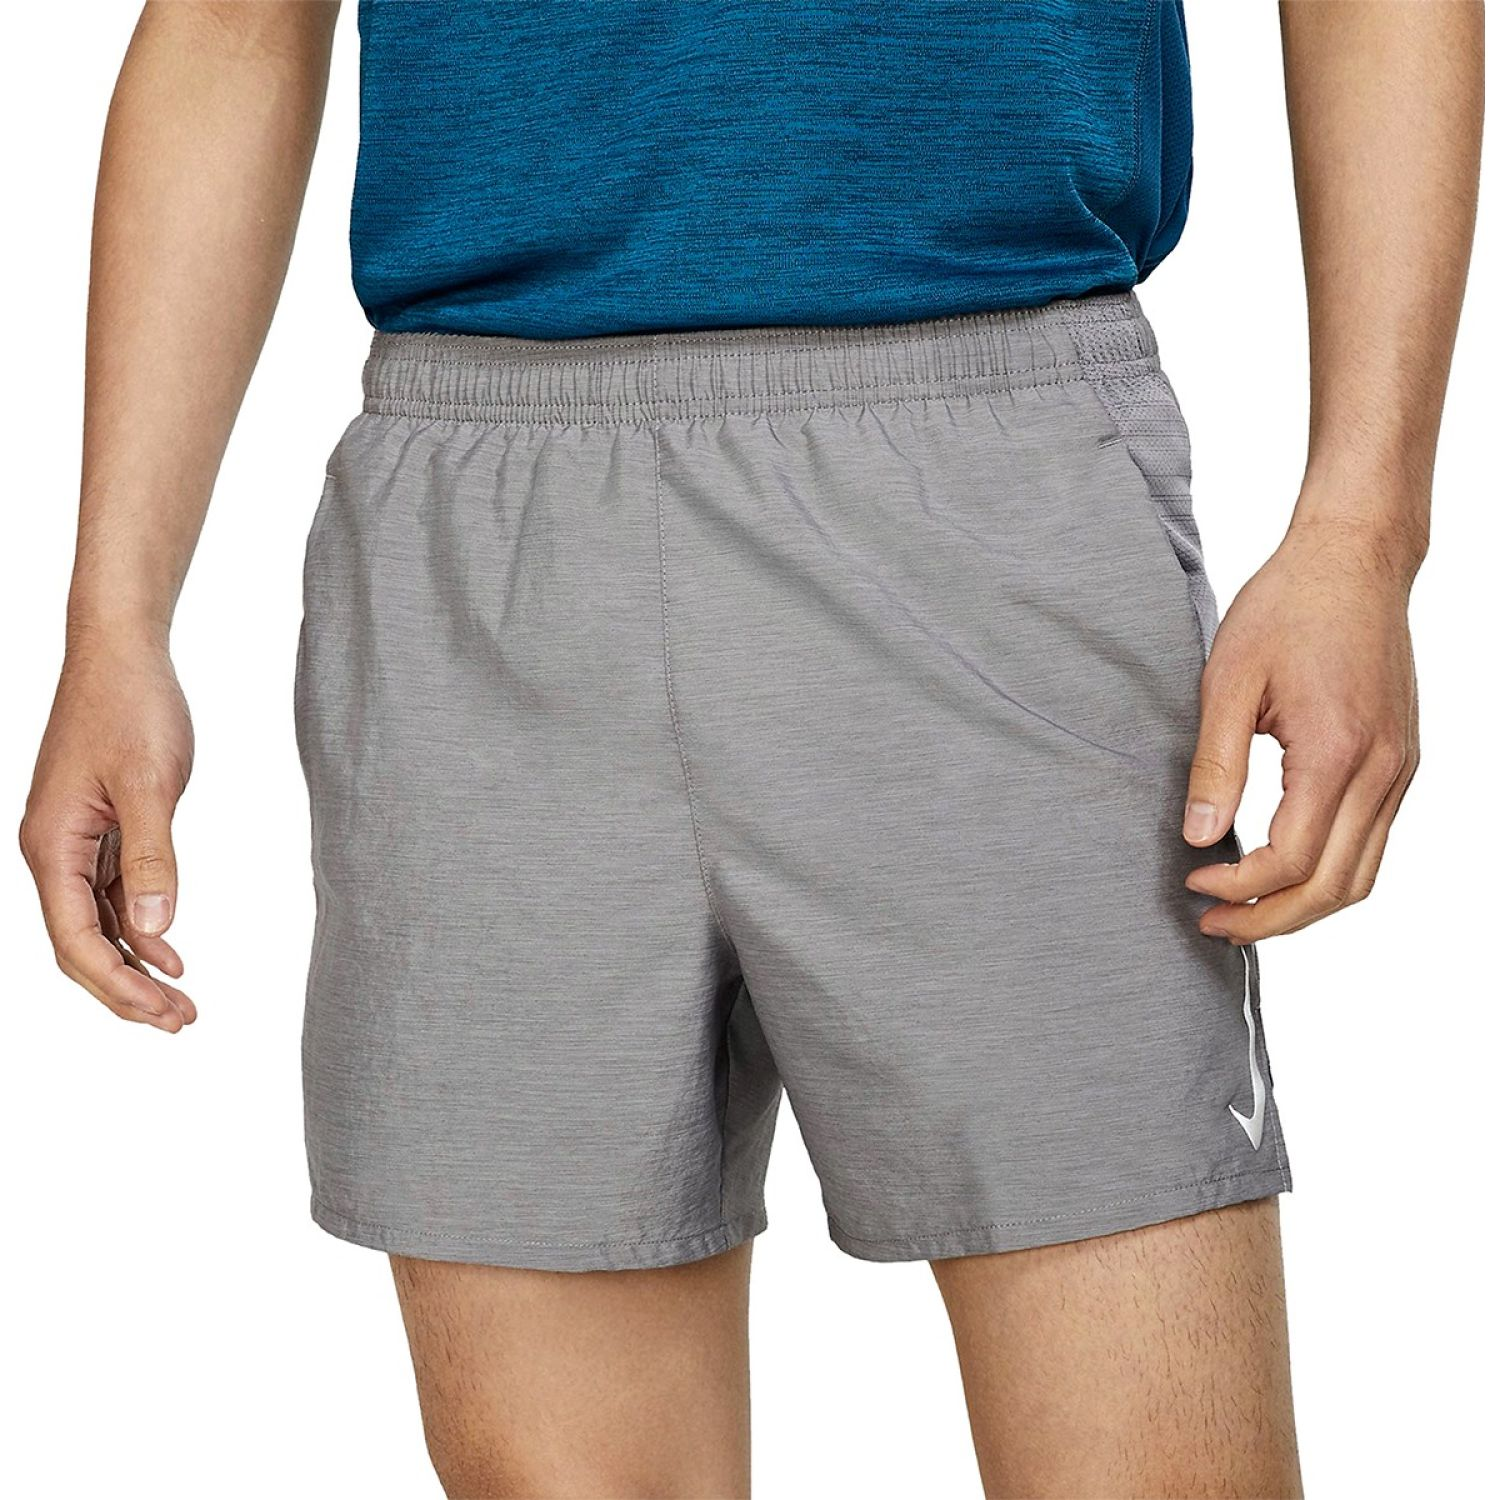 Nike M NK CHLLGR SHORT 5IN BF Gris Shorts Deportivos